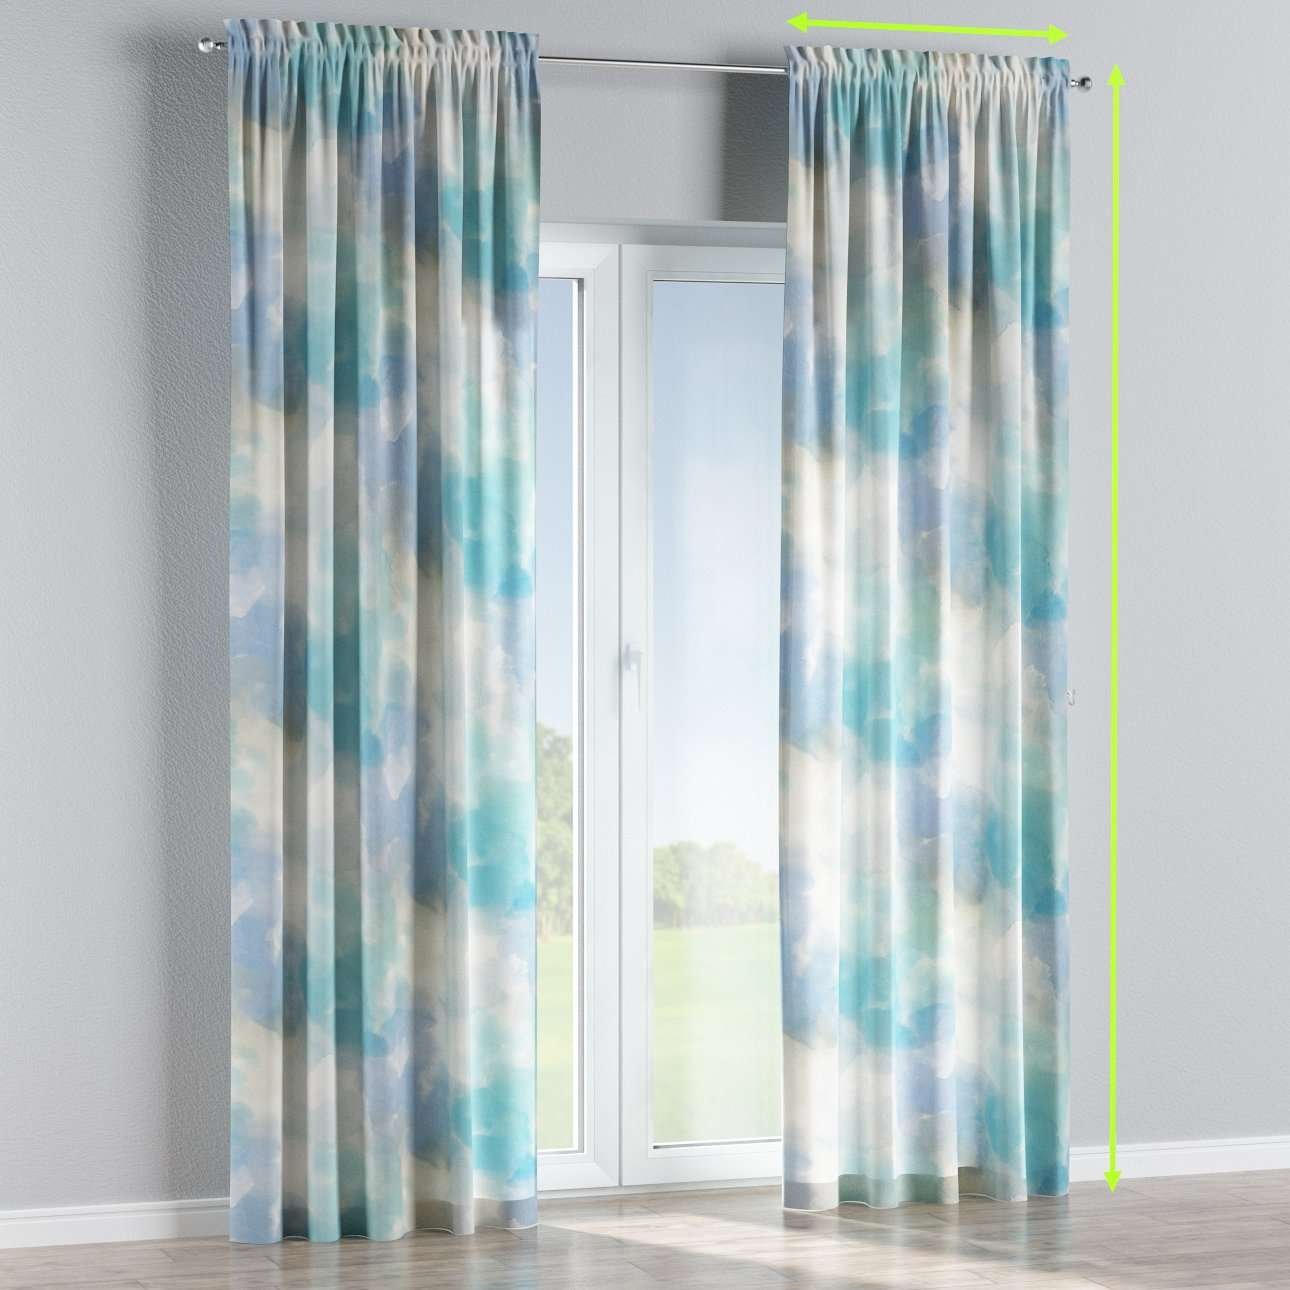 Slot and frill lined curtains in collection Aquarelle, fabric: 140-67